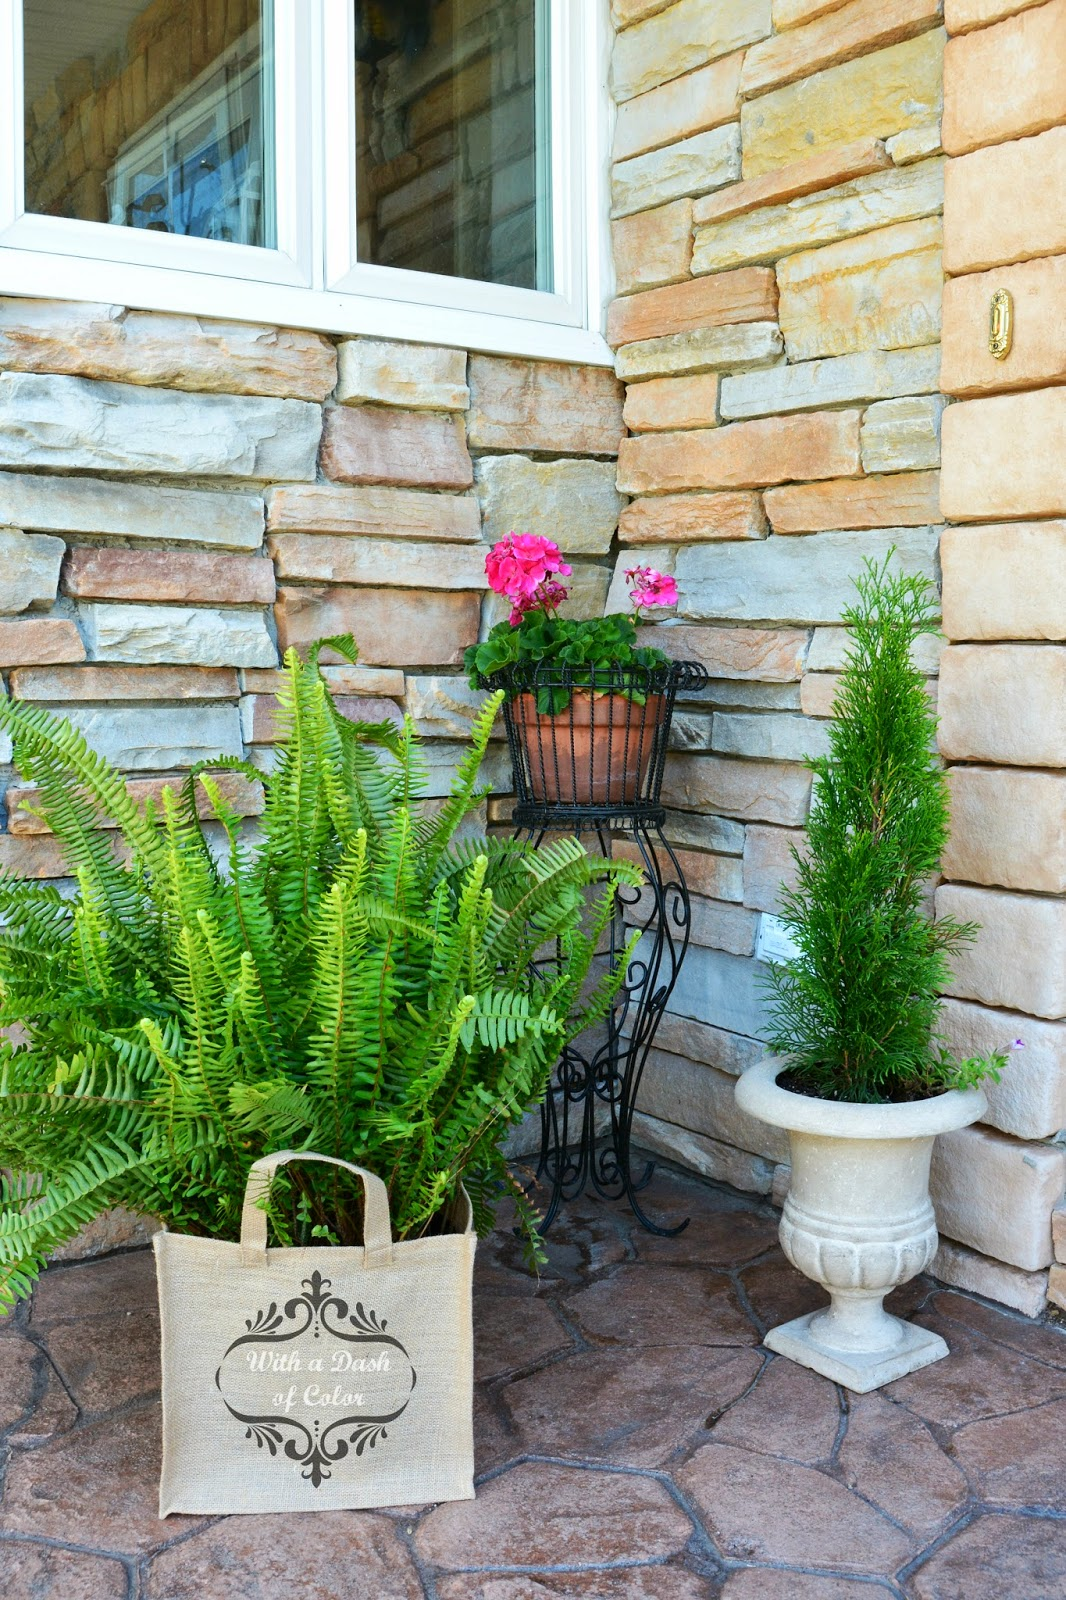 With a dash of color burlap bag planter Plants next to front door